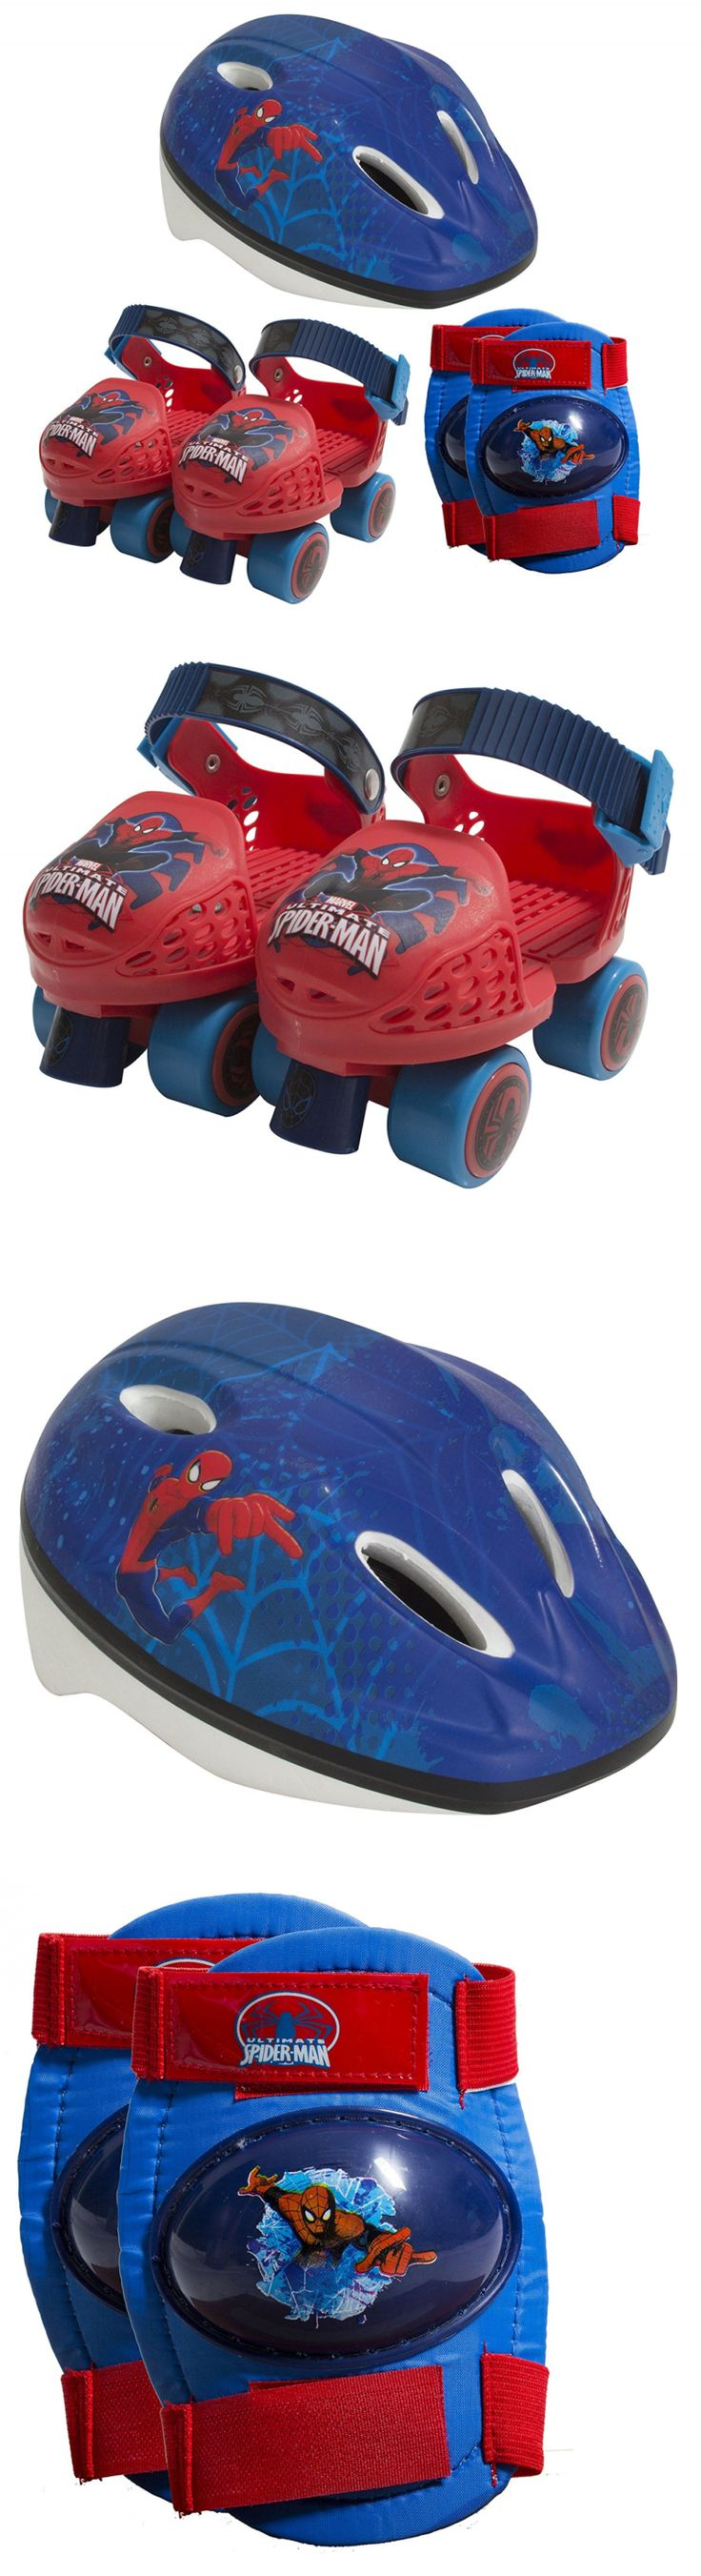 Youth 71156: Playwheels Spider-Man Kids Roller Skates With Knee Pads And Helmet - Junior Size -> BUY IT NOW ONLY: $37.52 on eBay!